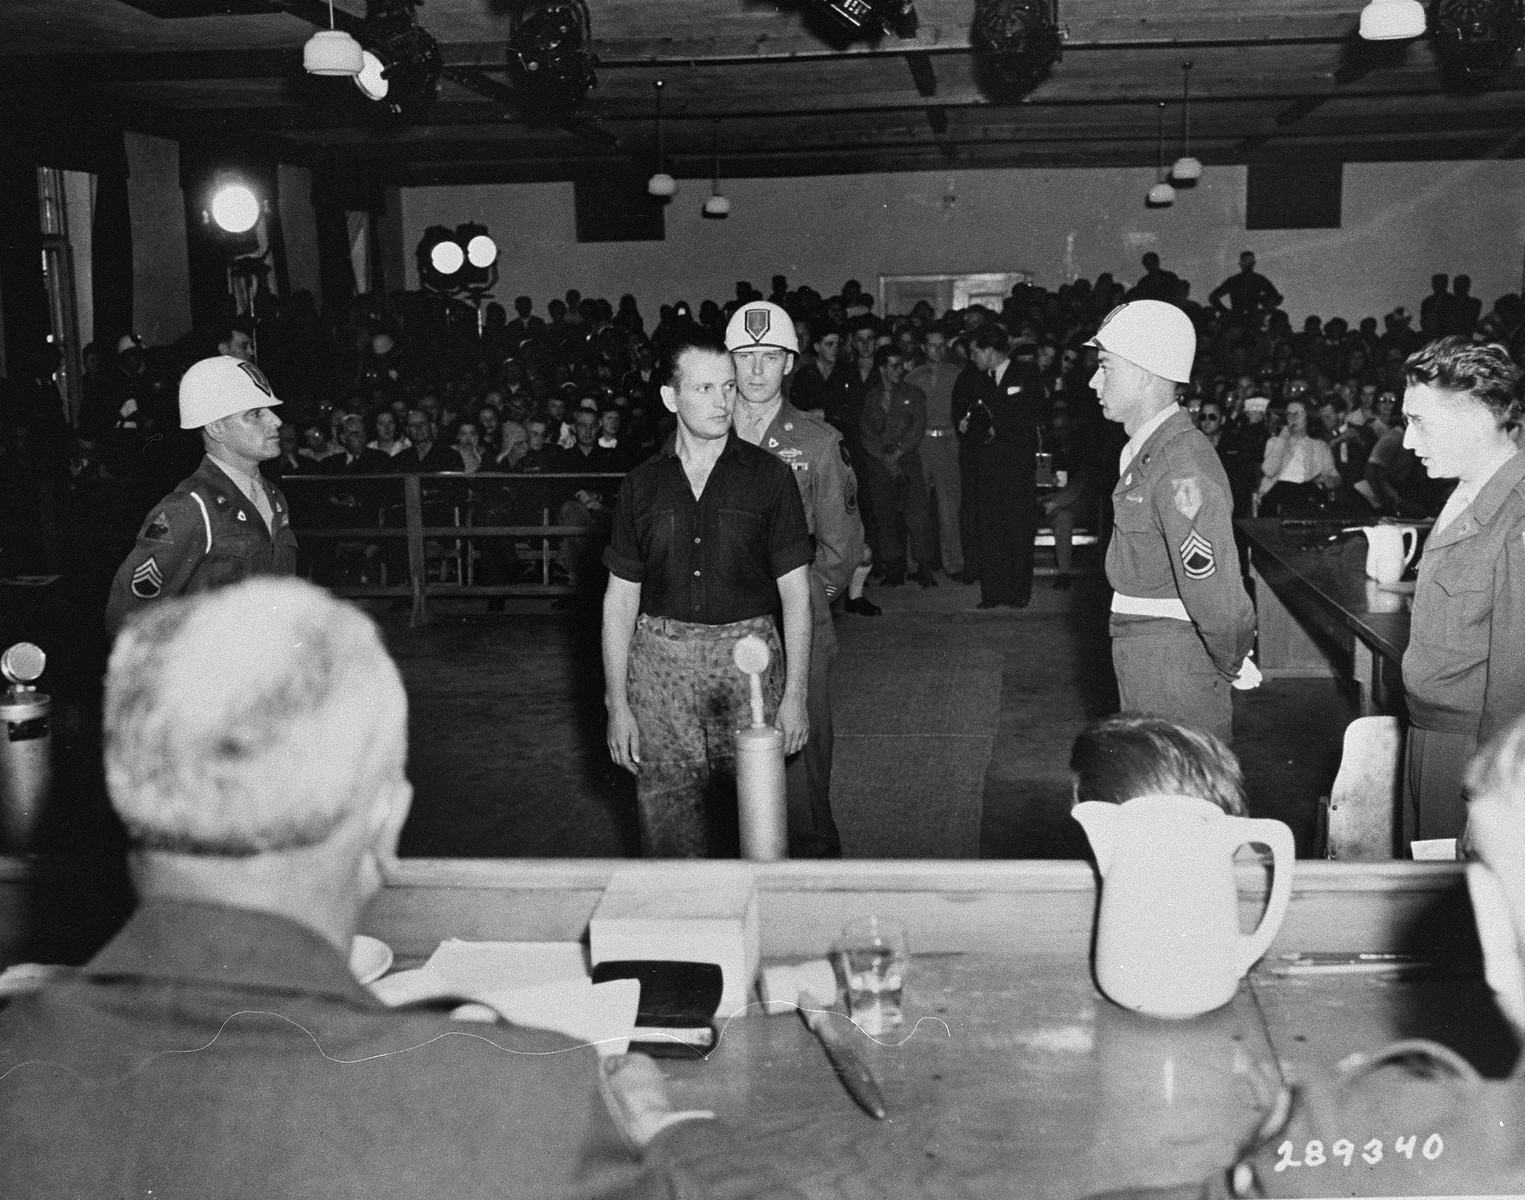 Former SS Sergeant Helmut Roscher is sentenced to death by hanging by Brigadier General Emil C. Kiel (back to camera) at the trial of former camp personnel and prisoners from Buchenwald.